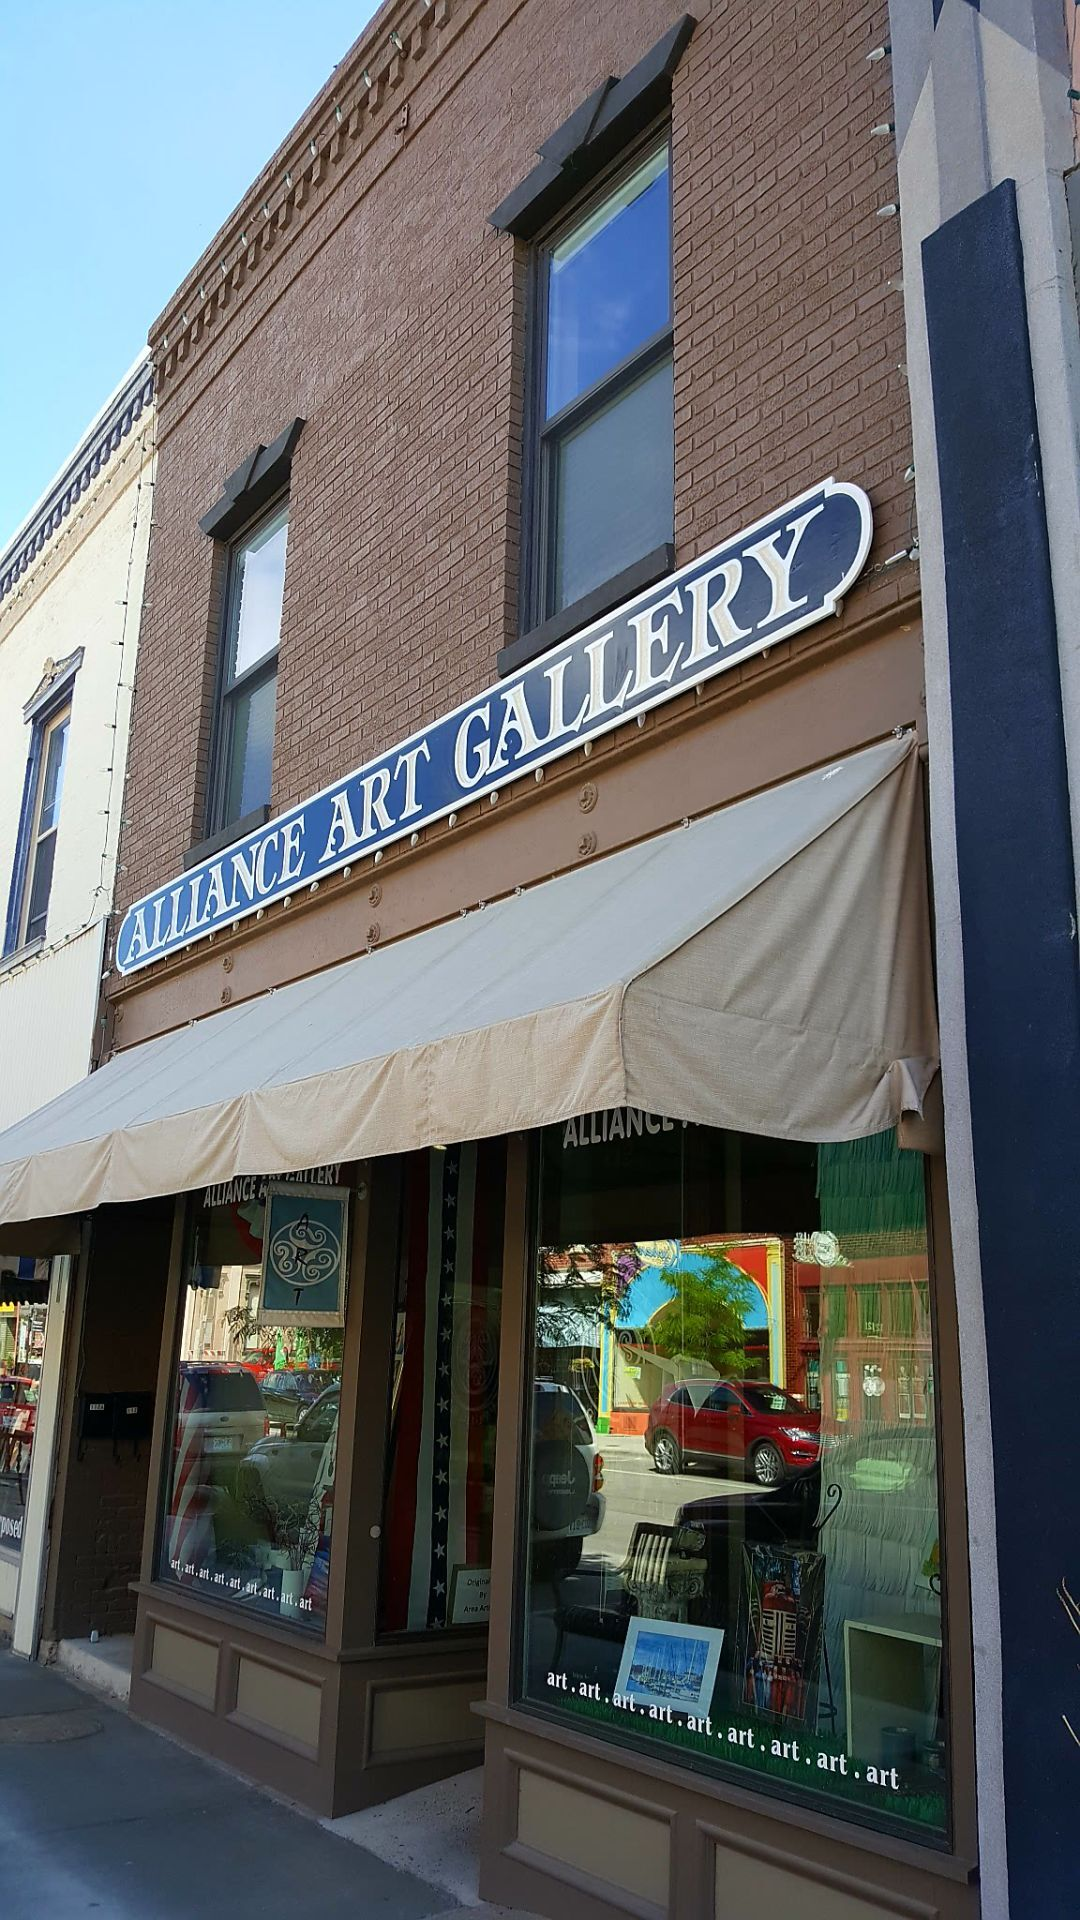 Downtown Hannibal galleries continue monthly staple